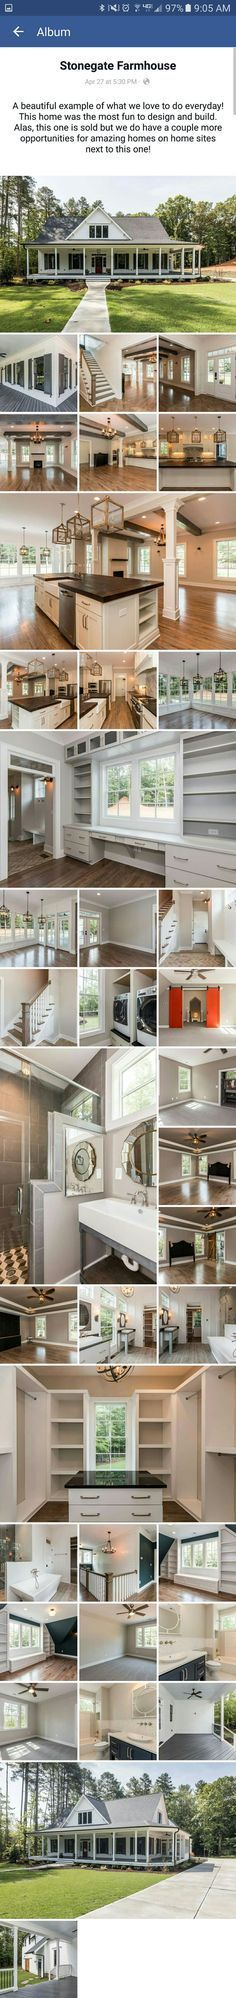 56 best Home Inspirations images on Pinterest in 2018 Modular